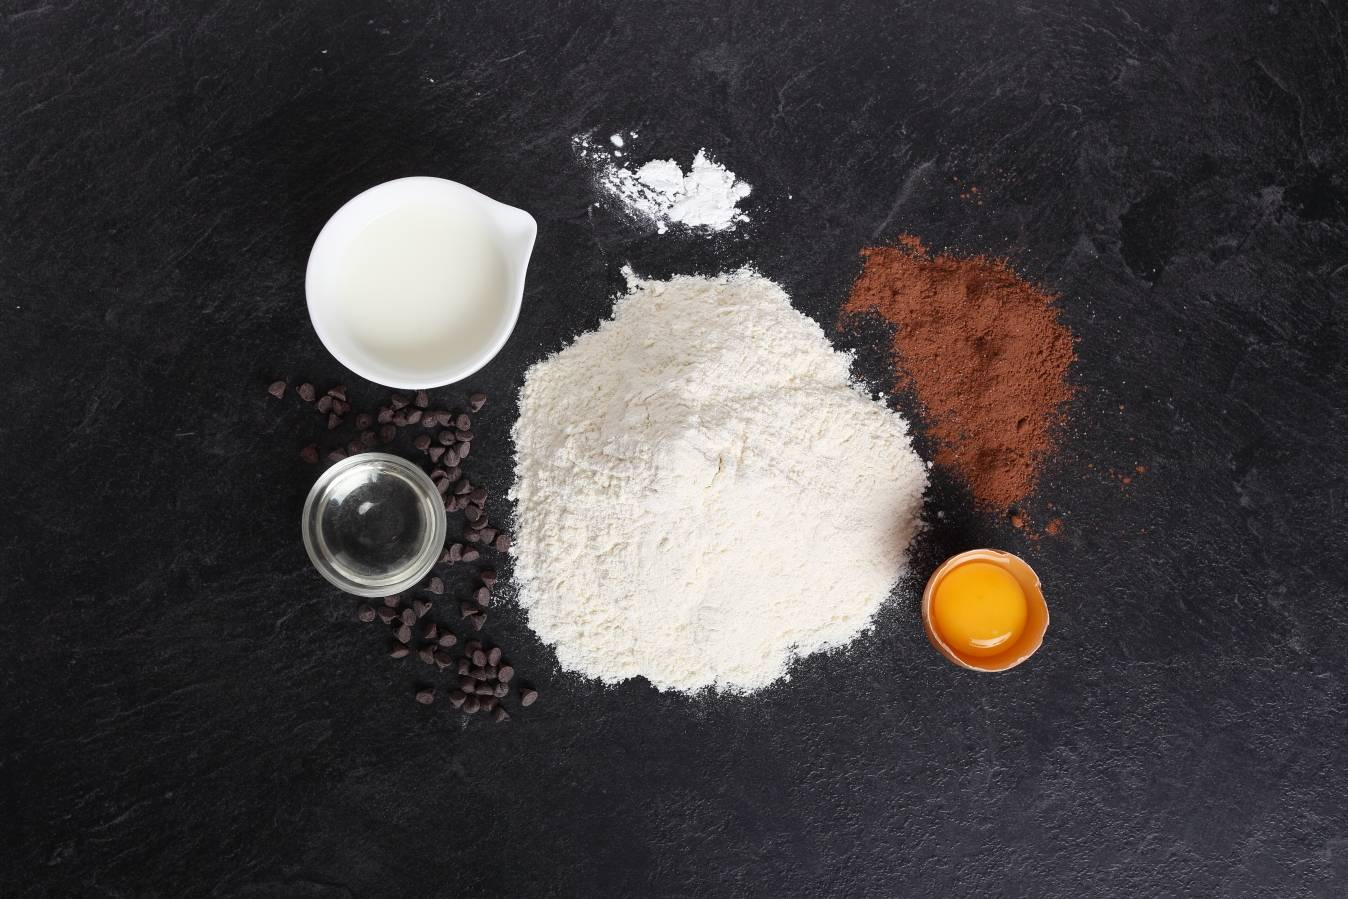 Ingredients - Mini chocolate muffins